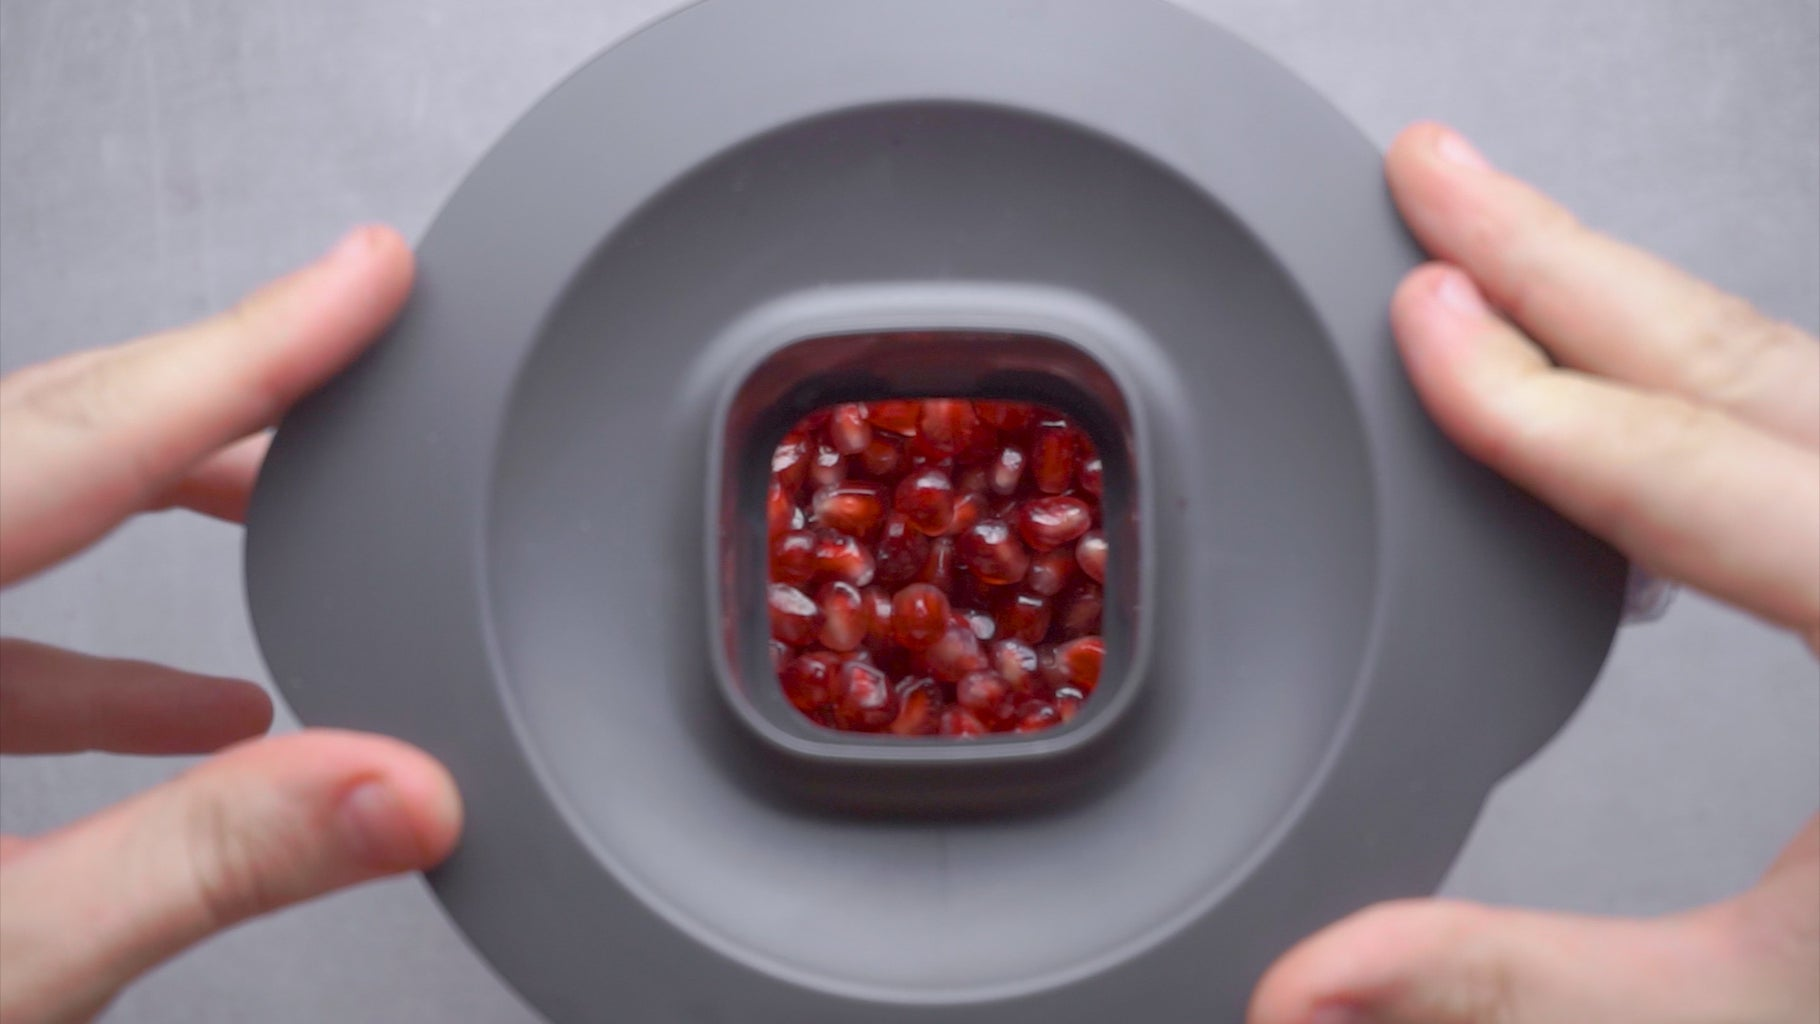 Transfer the Pomegranate Seeds to a Blender